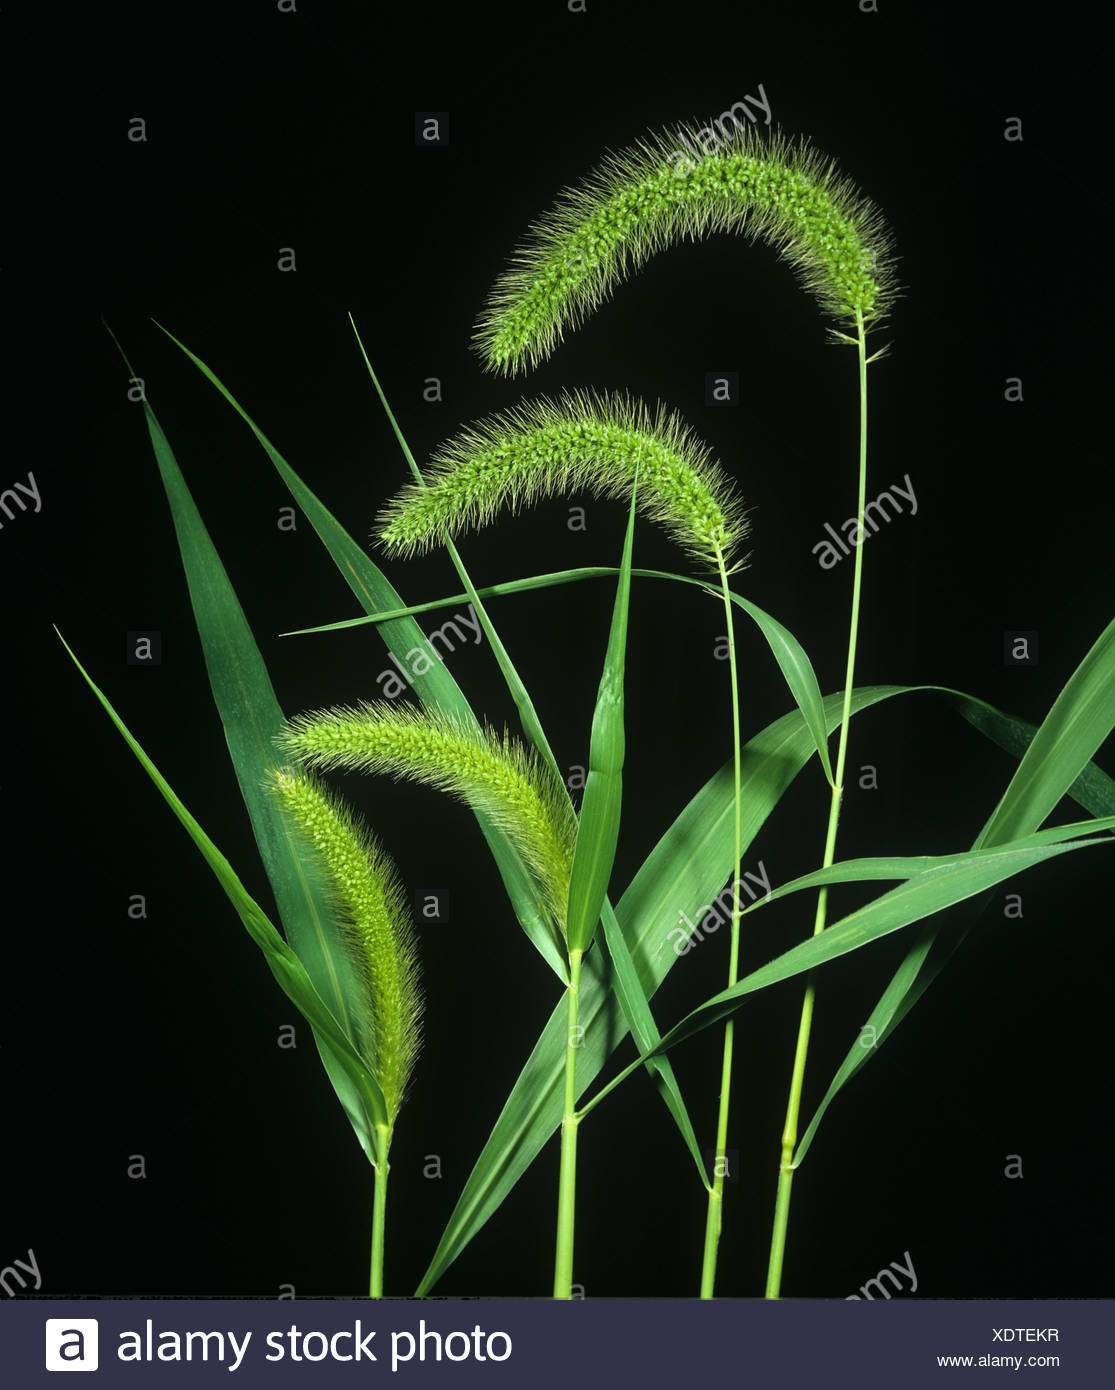 Giant foxtail Setaria faberi flower spikes of grass weed - Stock Image